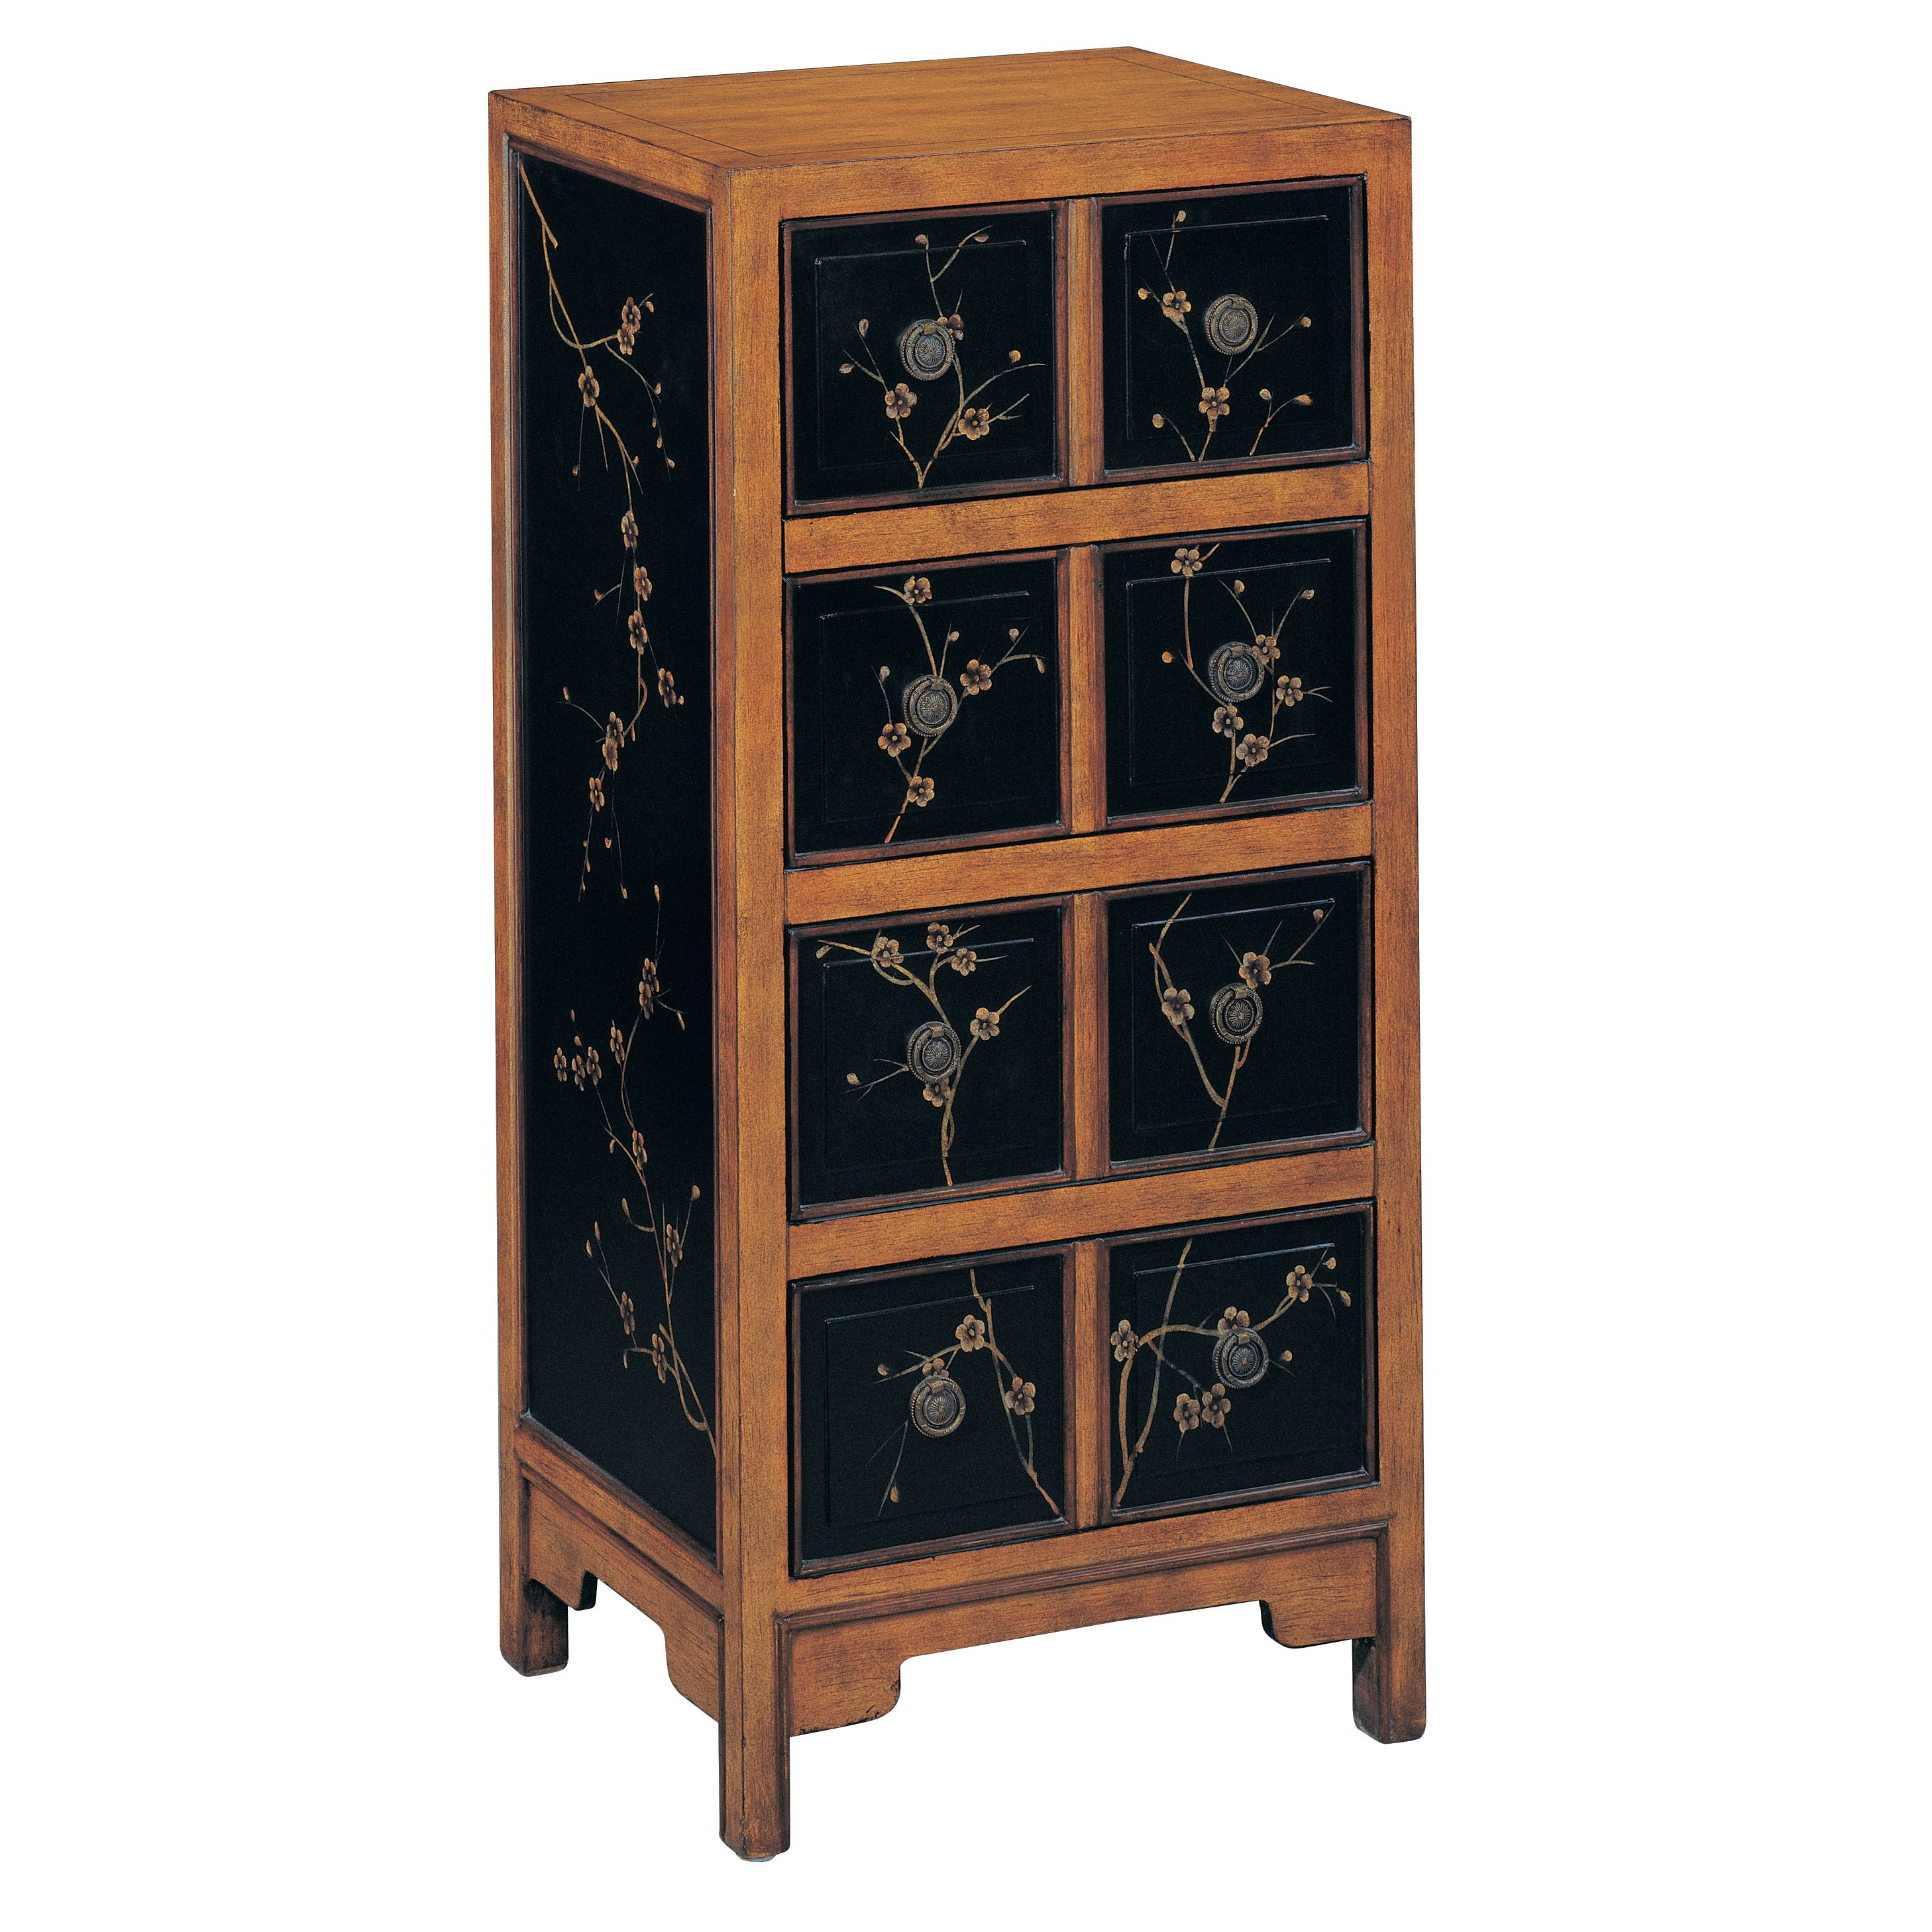 apothecary style furniture. The Niko Chest Is A Apothecary Style That Tall And Narrow, Featuring Four Furniture C